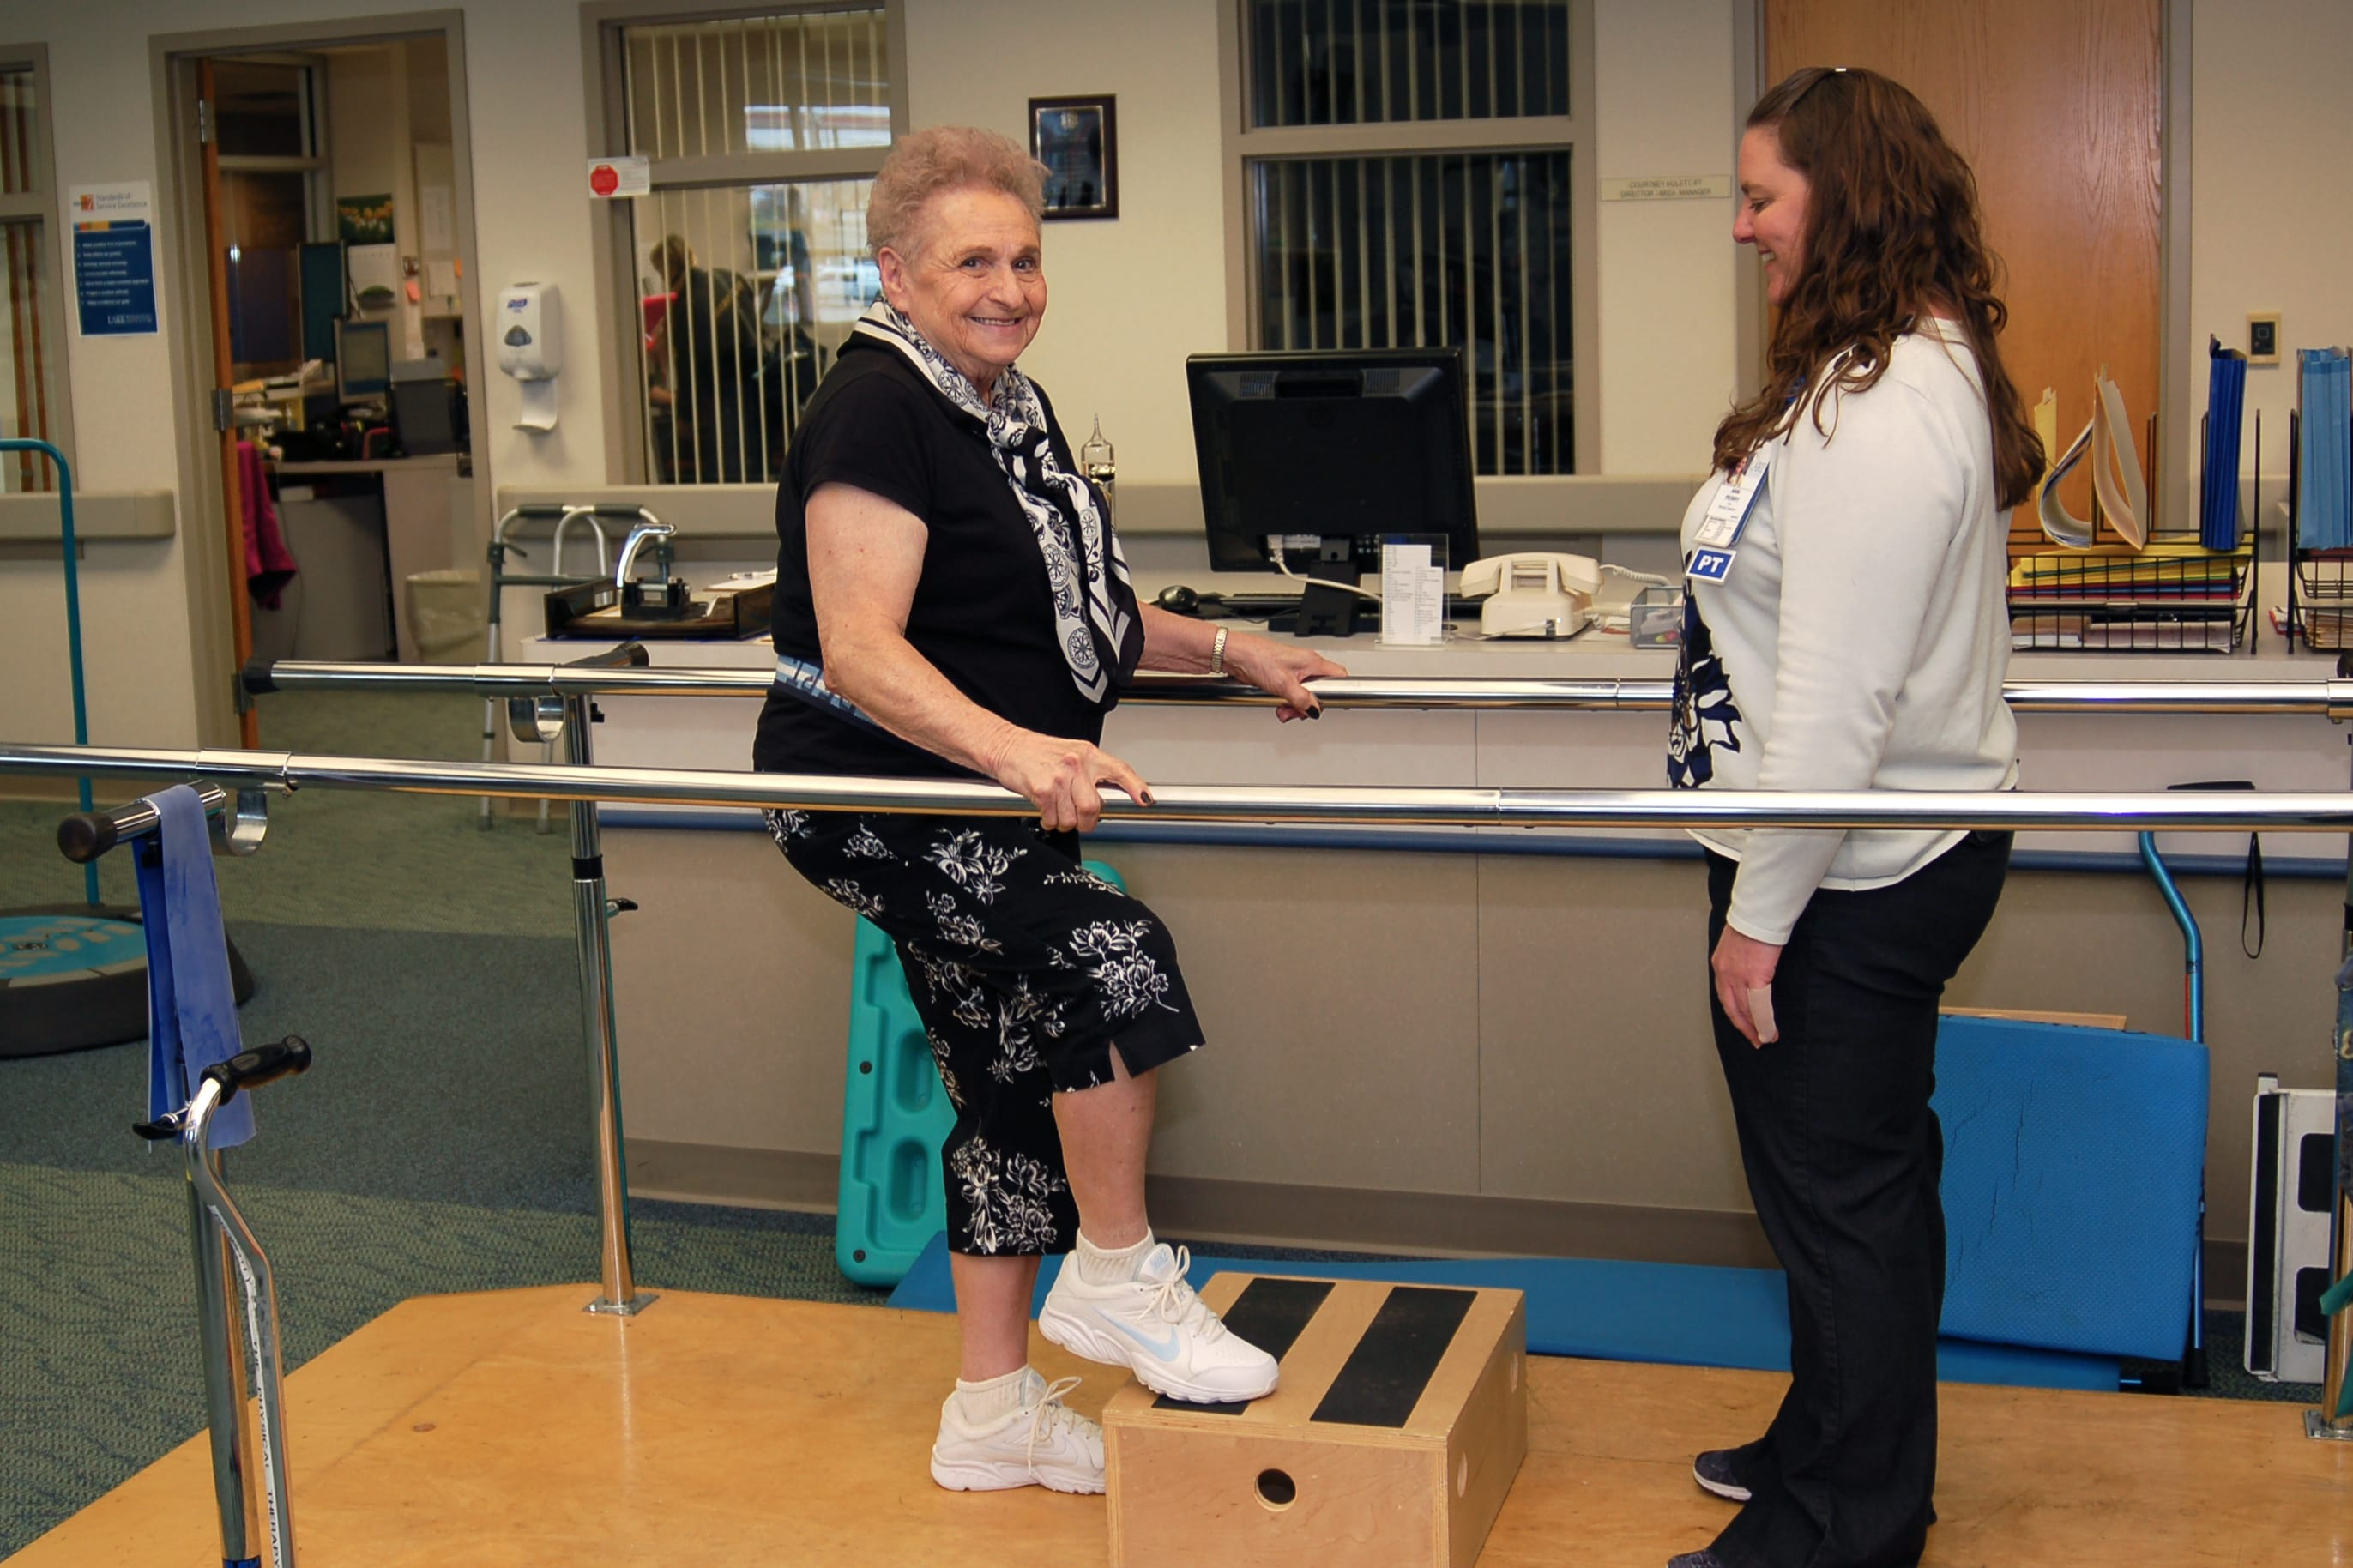 Lois Shipp works with Lake Regional Physical Therapist Assistant Ann Perry to recover strength and control after a debilitating stroke.